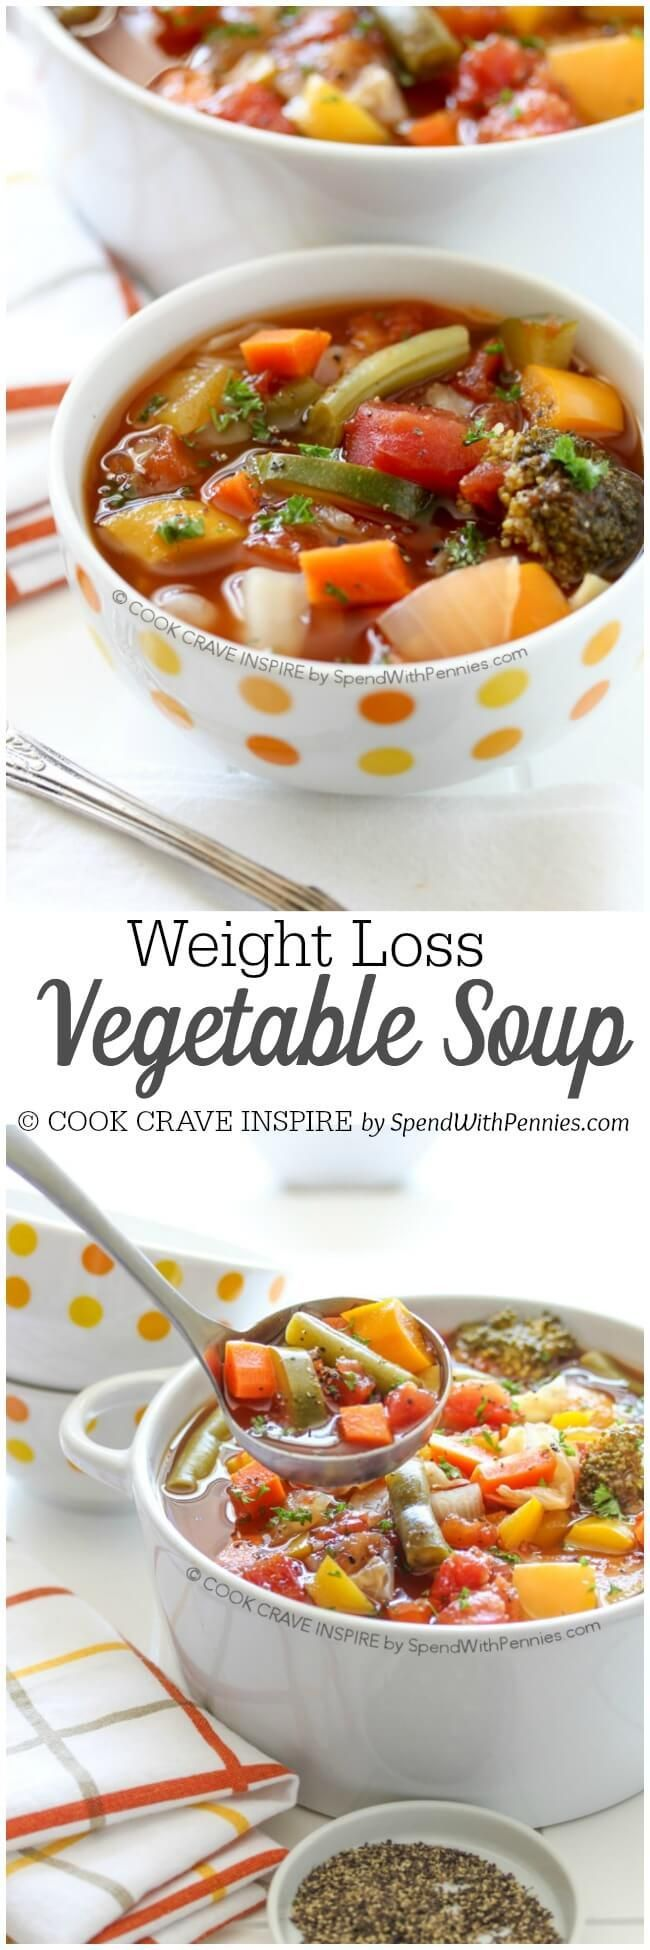 Lose weight by cleansing your body image 2